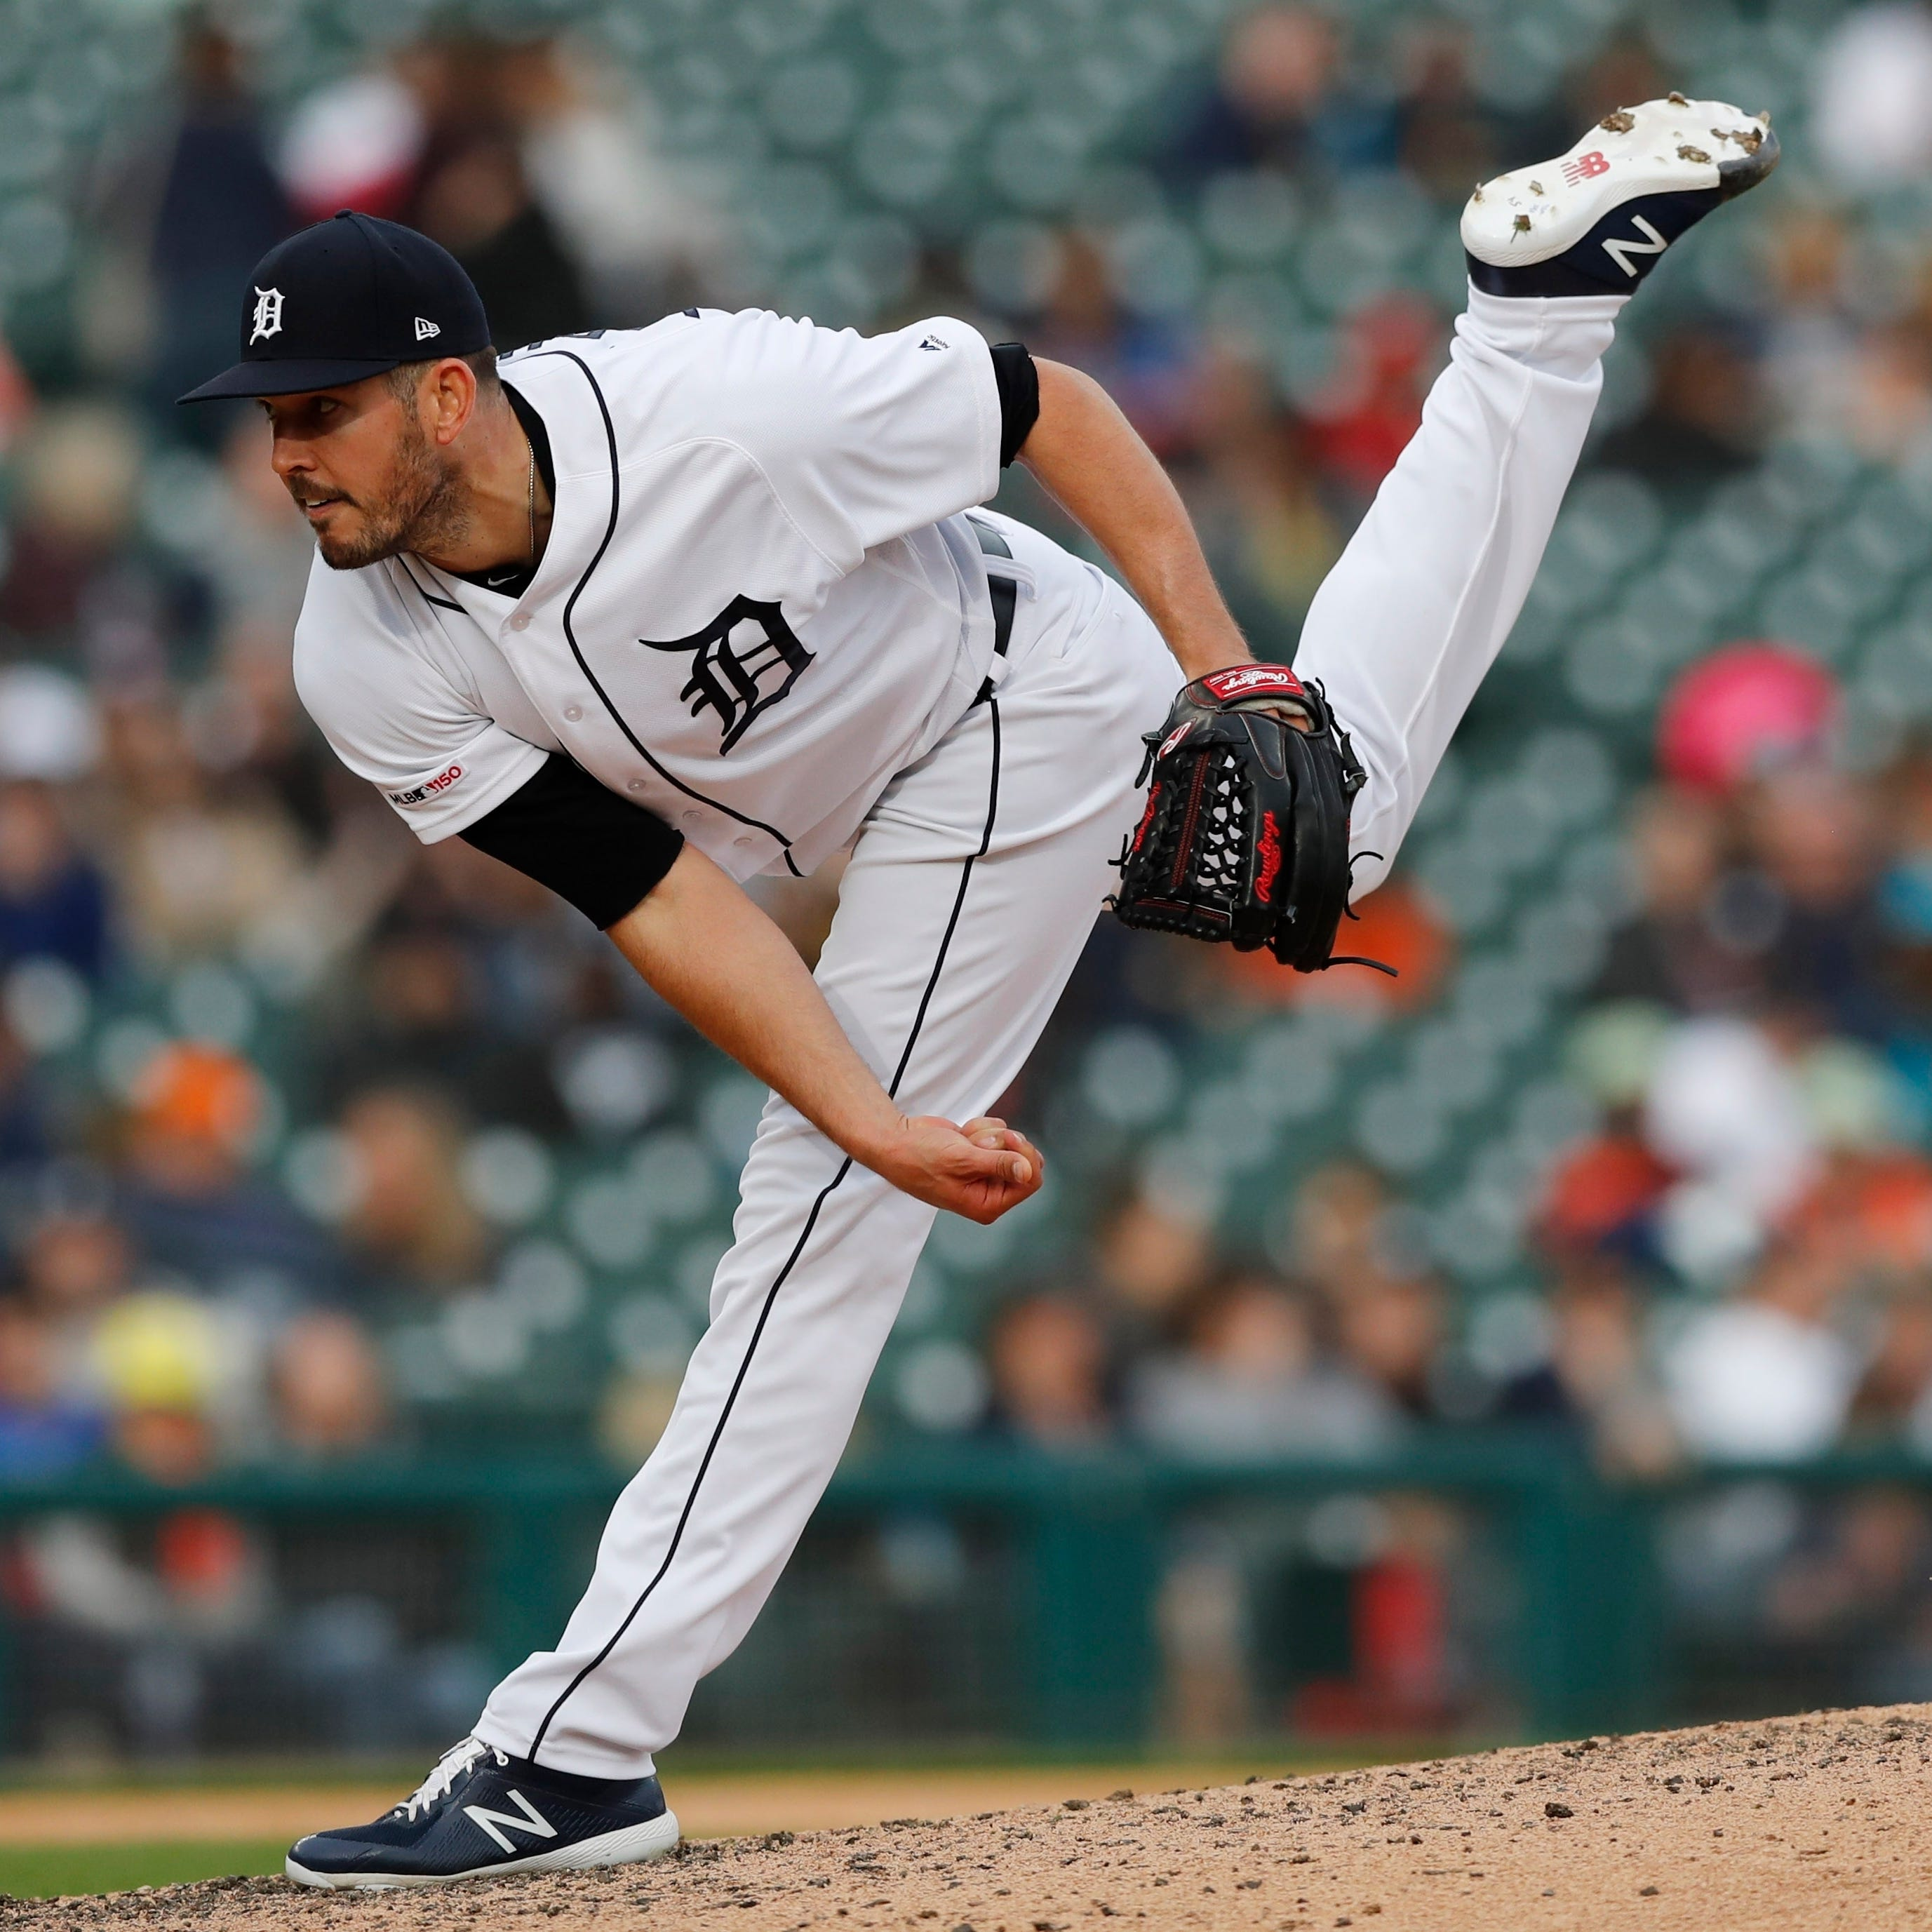 'Maybe a change of scenery will do him good': Tigers DFA Drew VerHagen